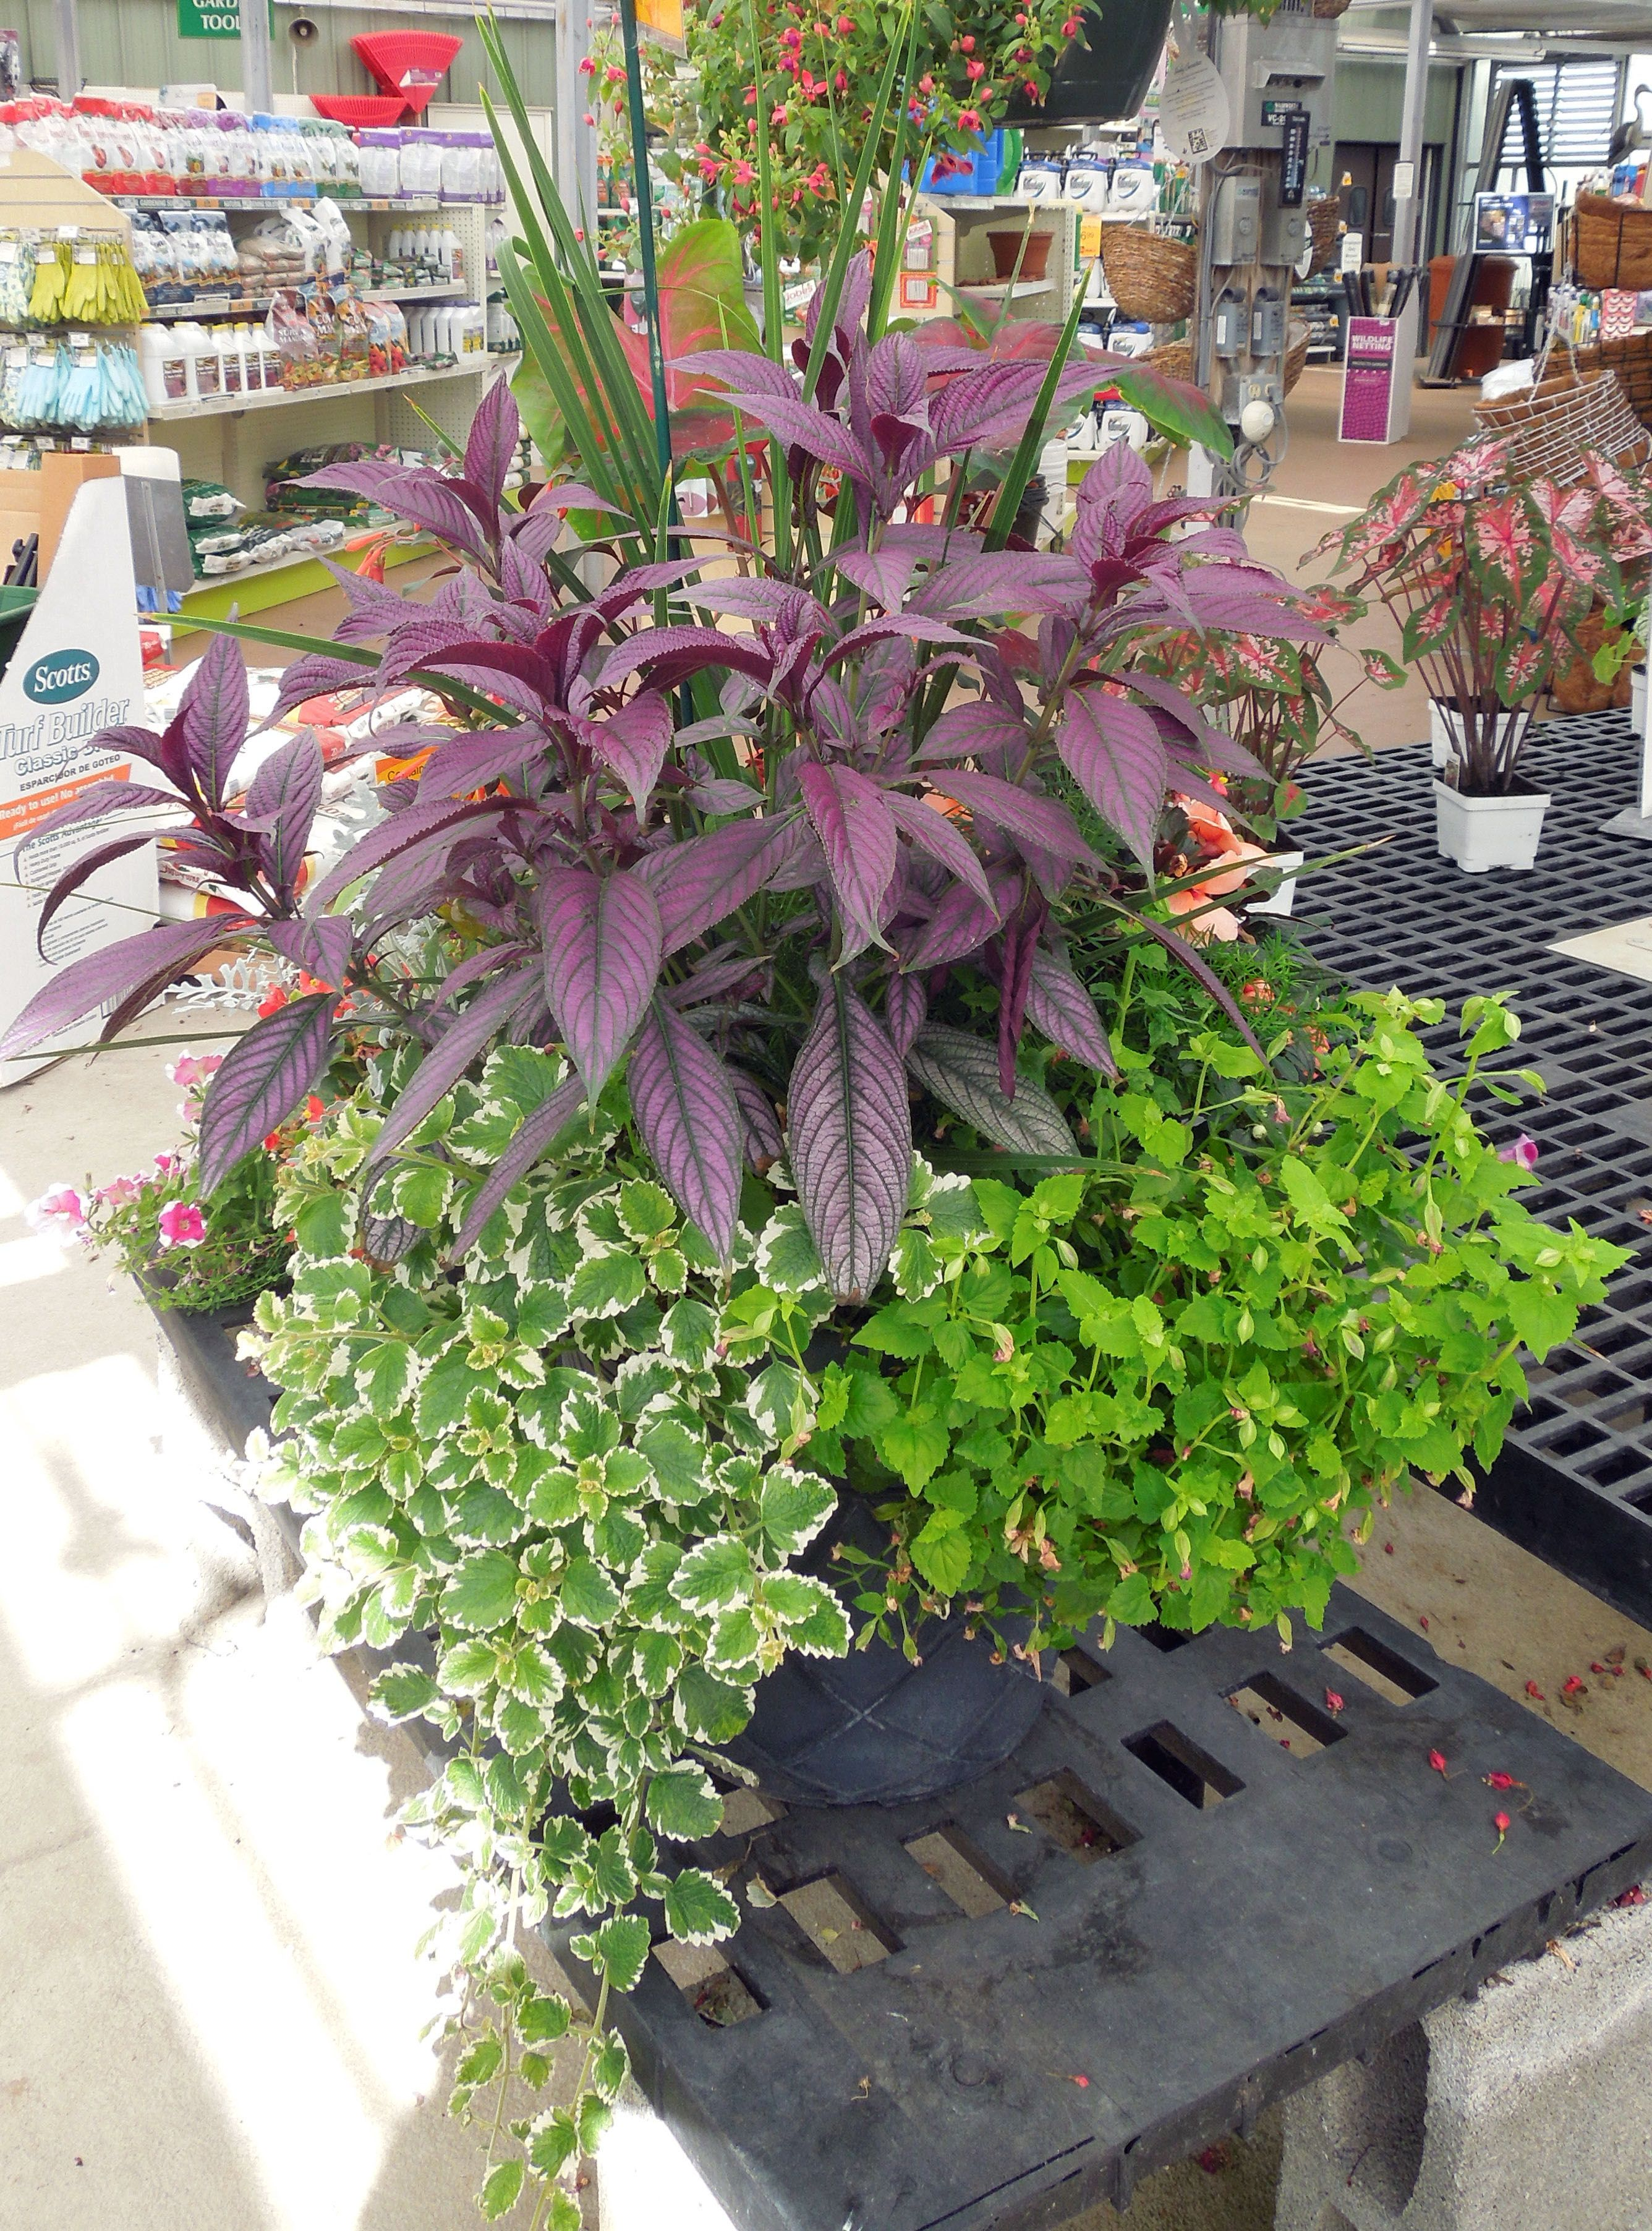 Amazing Summer Container Gardens Are In Store At Stauffers Of Kissel Hill Garden  Centers! Available In Full Sun, Part Shade Or Full Shade.